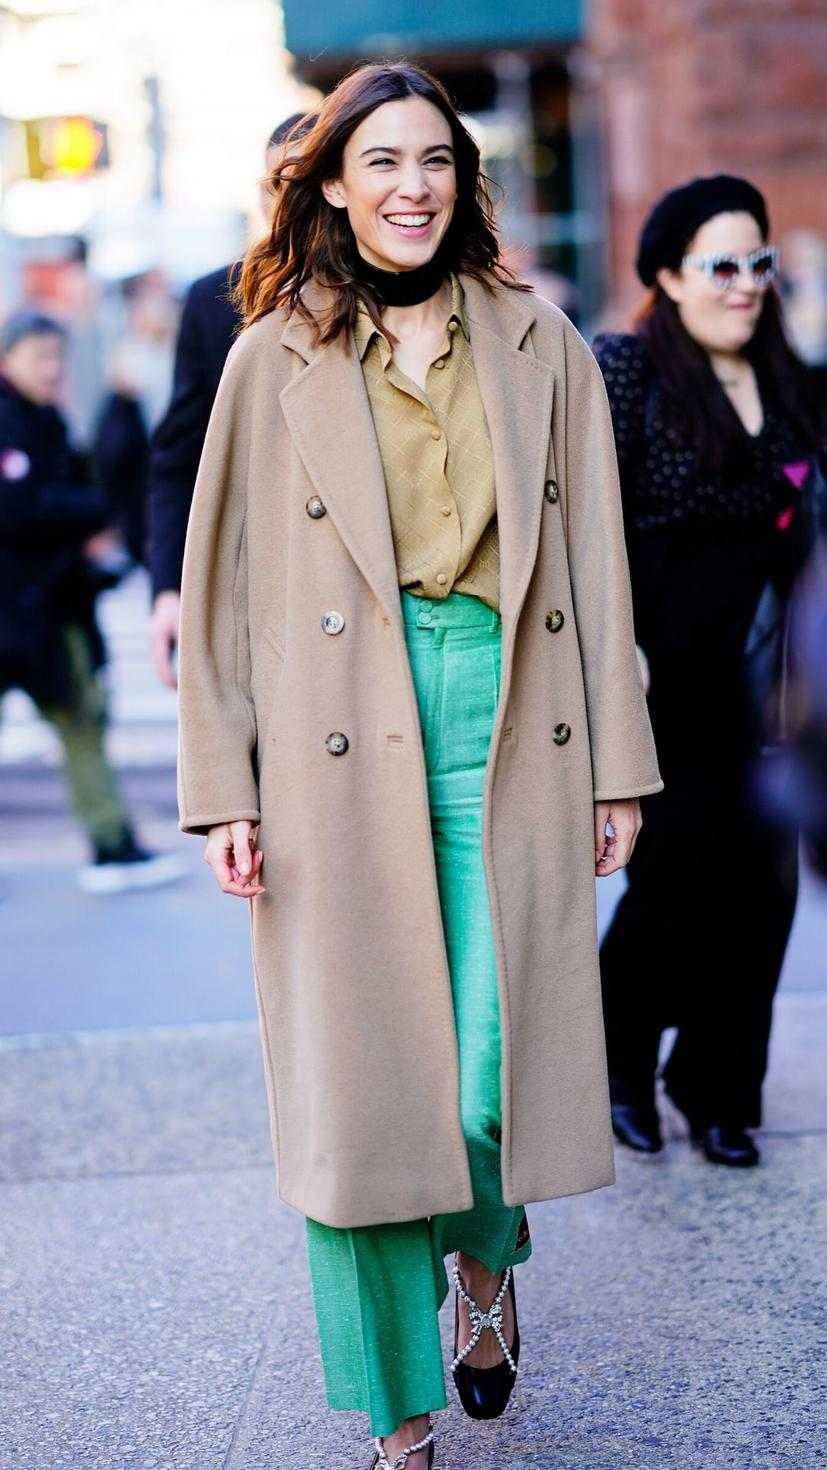 Alexa Chung steps out in a Max Mara icon coat, mint green Gucci trousers and Vivietta FW19 mary-jane shoes